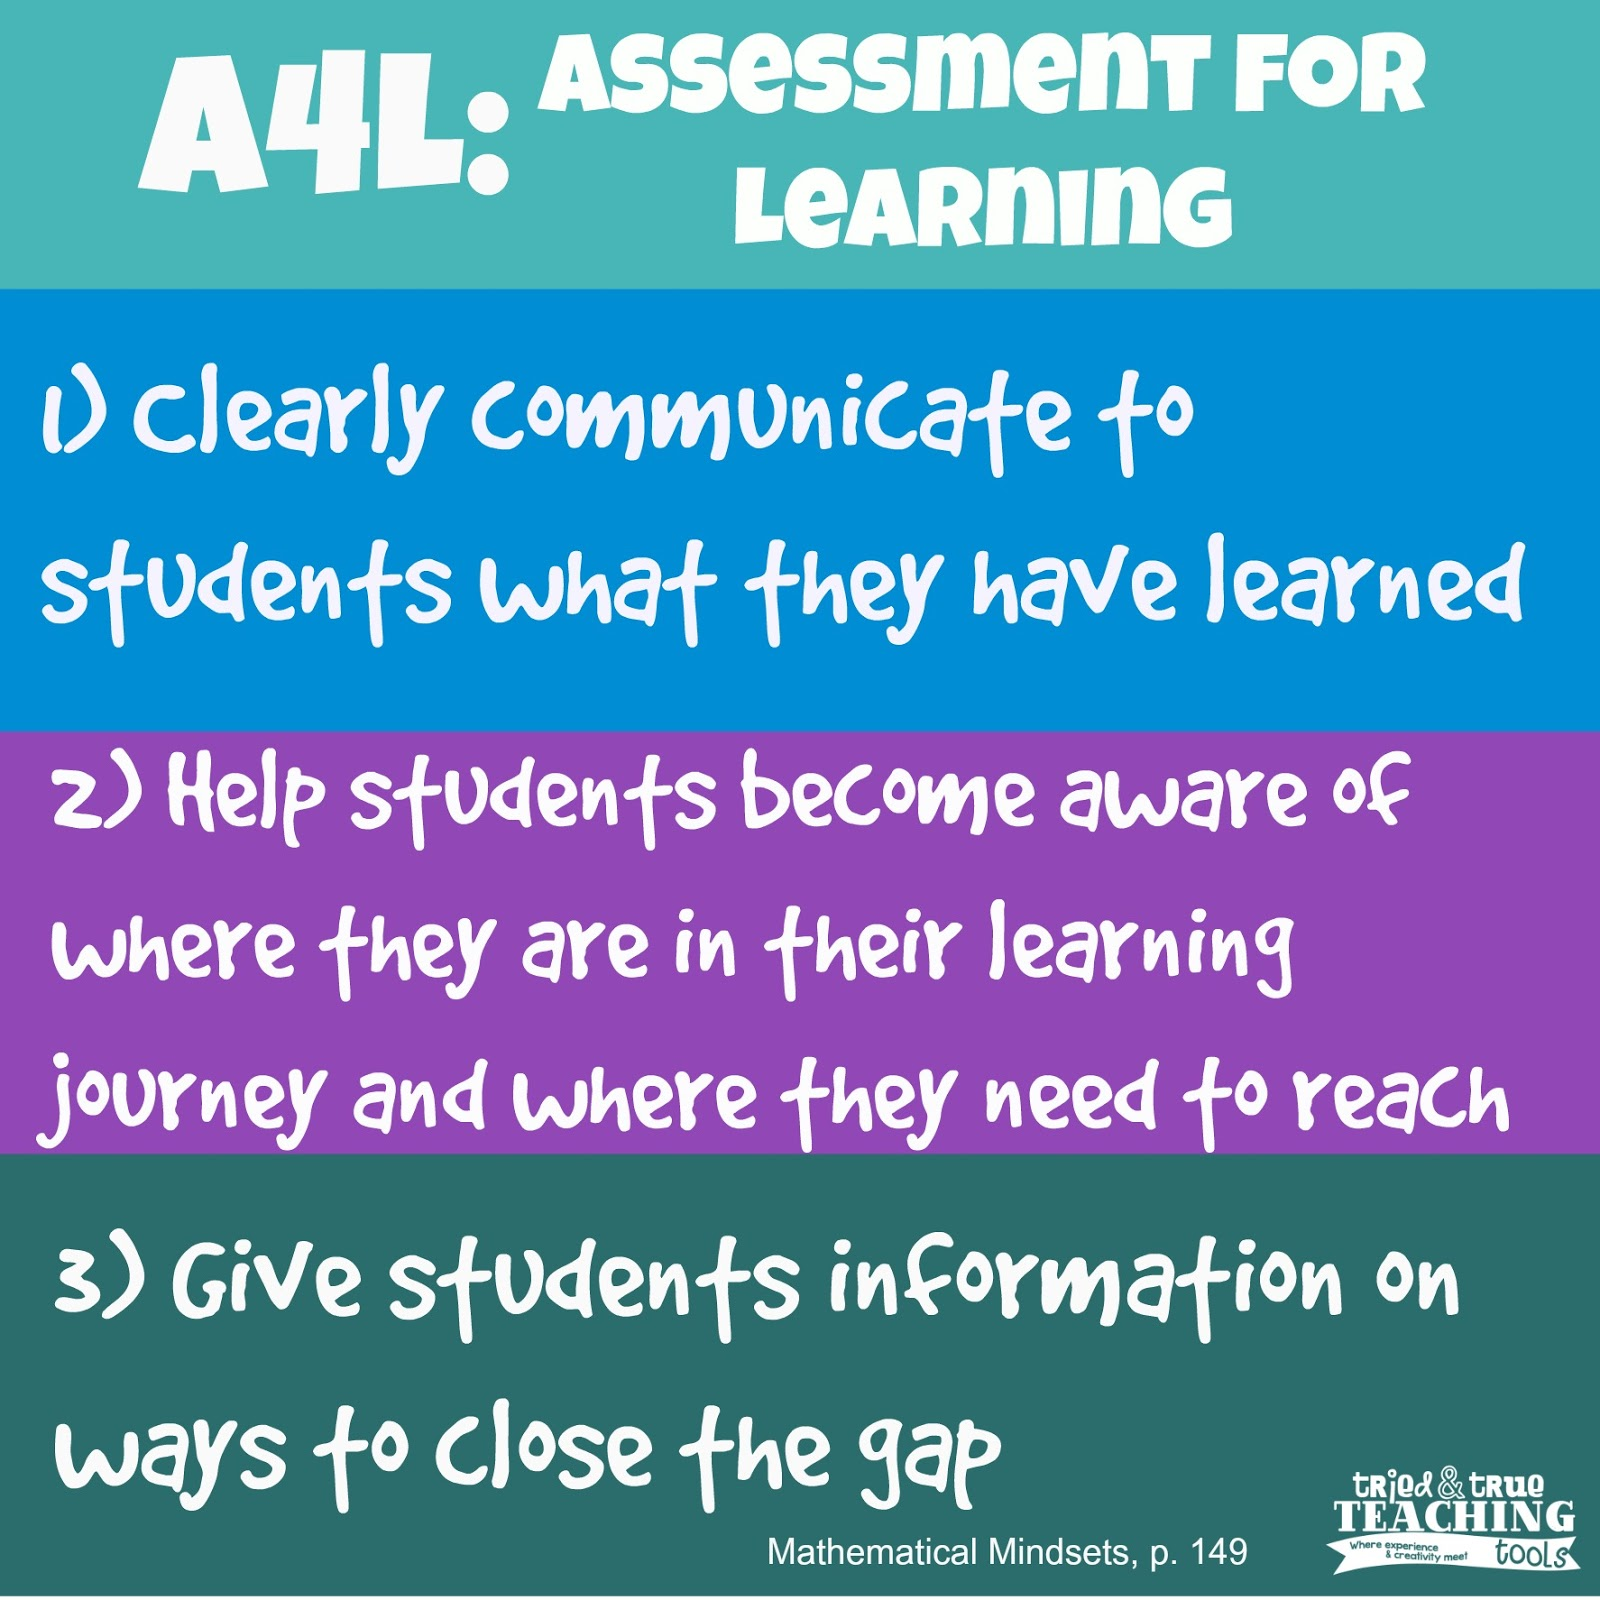 This Chapter Was Full Of Alternative Means Of Assessing Students. A Few  That I Want To Implement This Year Are: More Student Self-Assessment, Exit  Tickets,